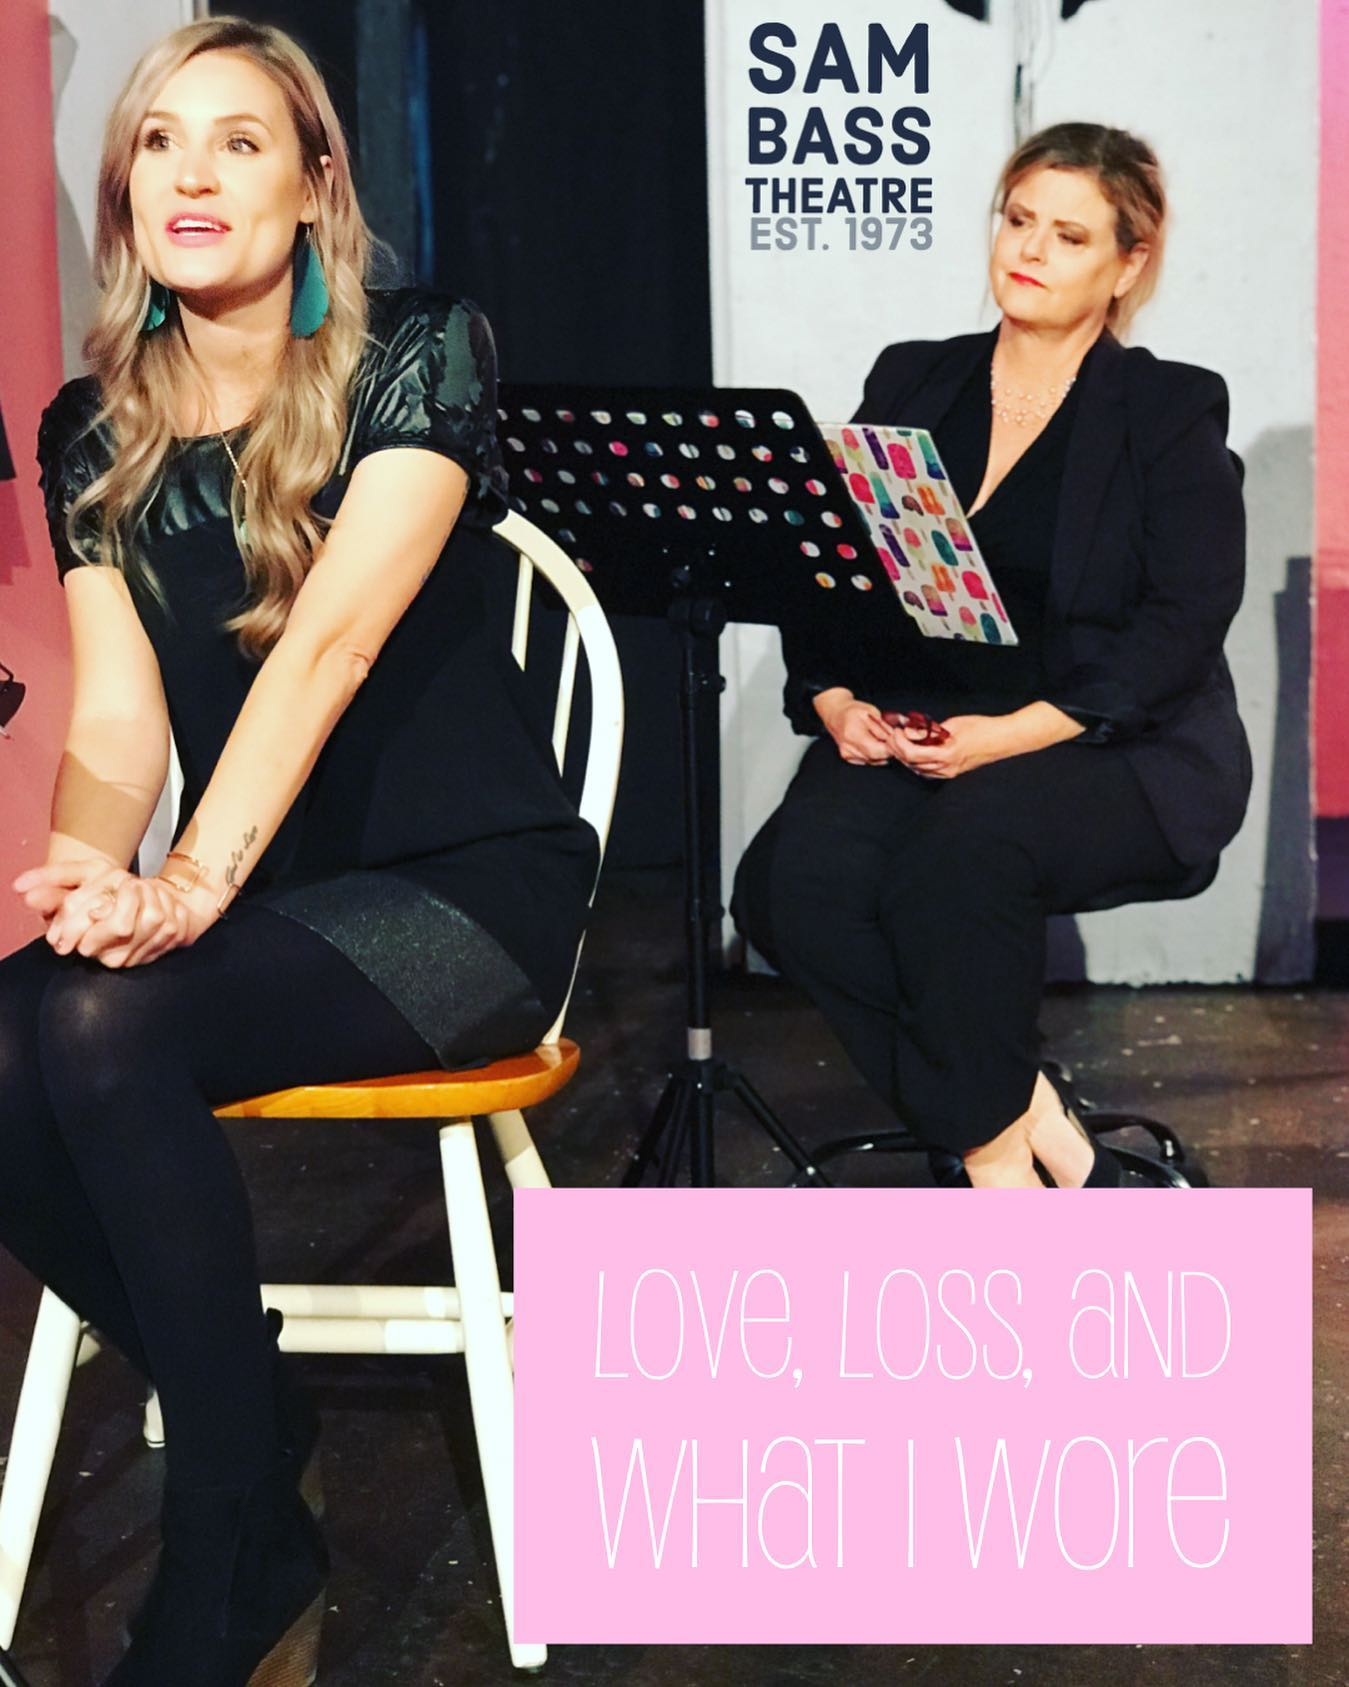 Love, Loss and What I Wore by Sam Bass Community Theatre